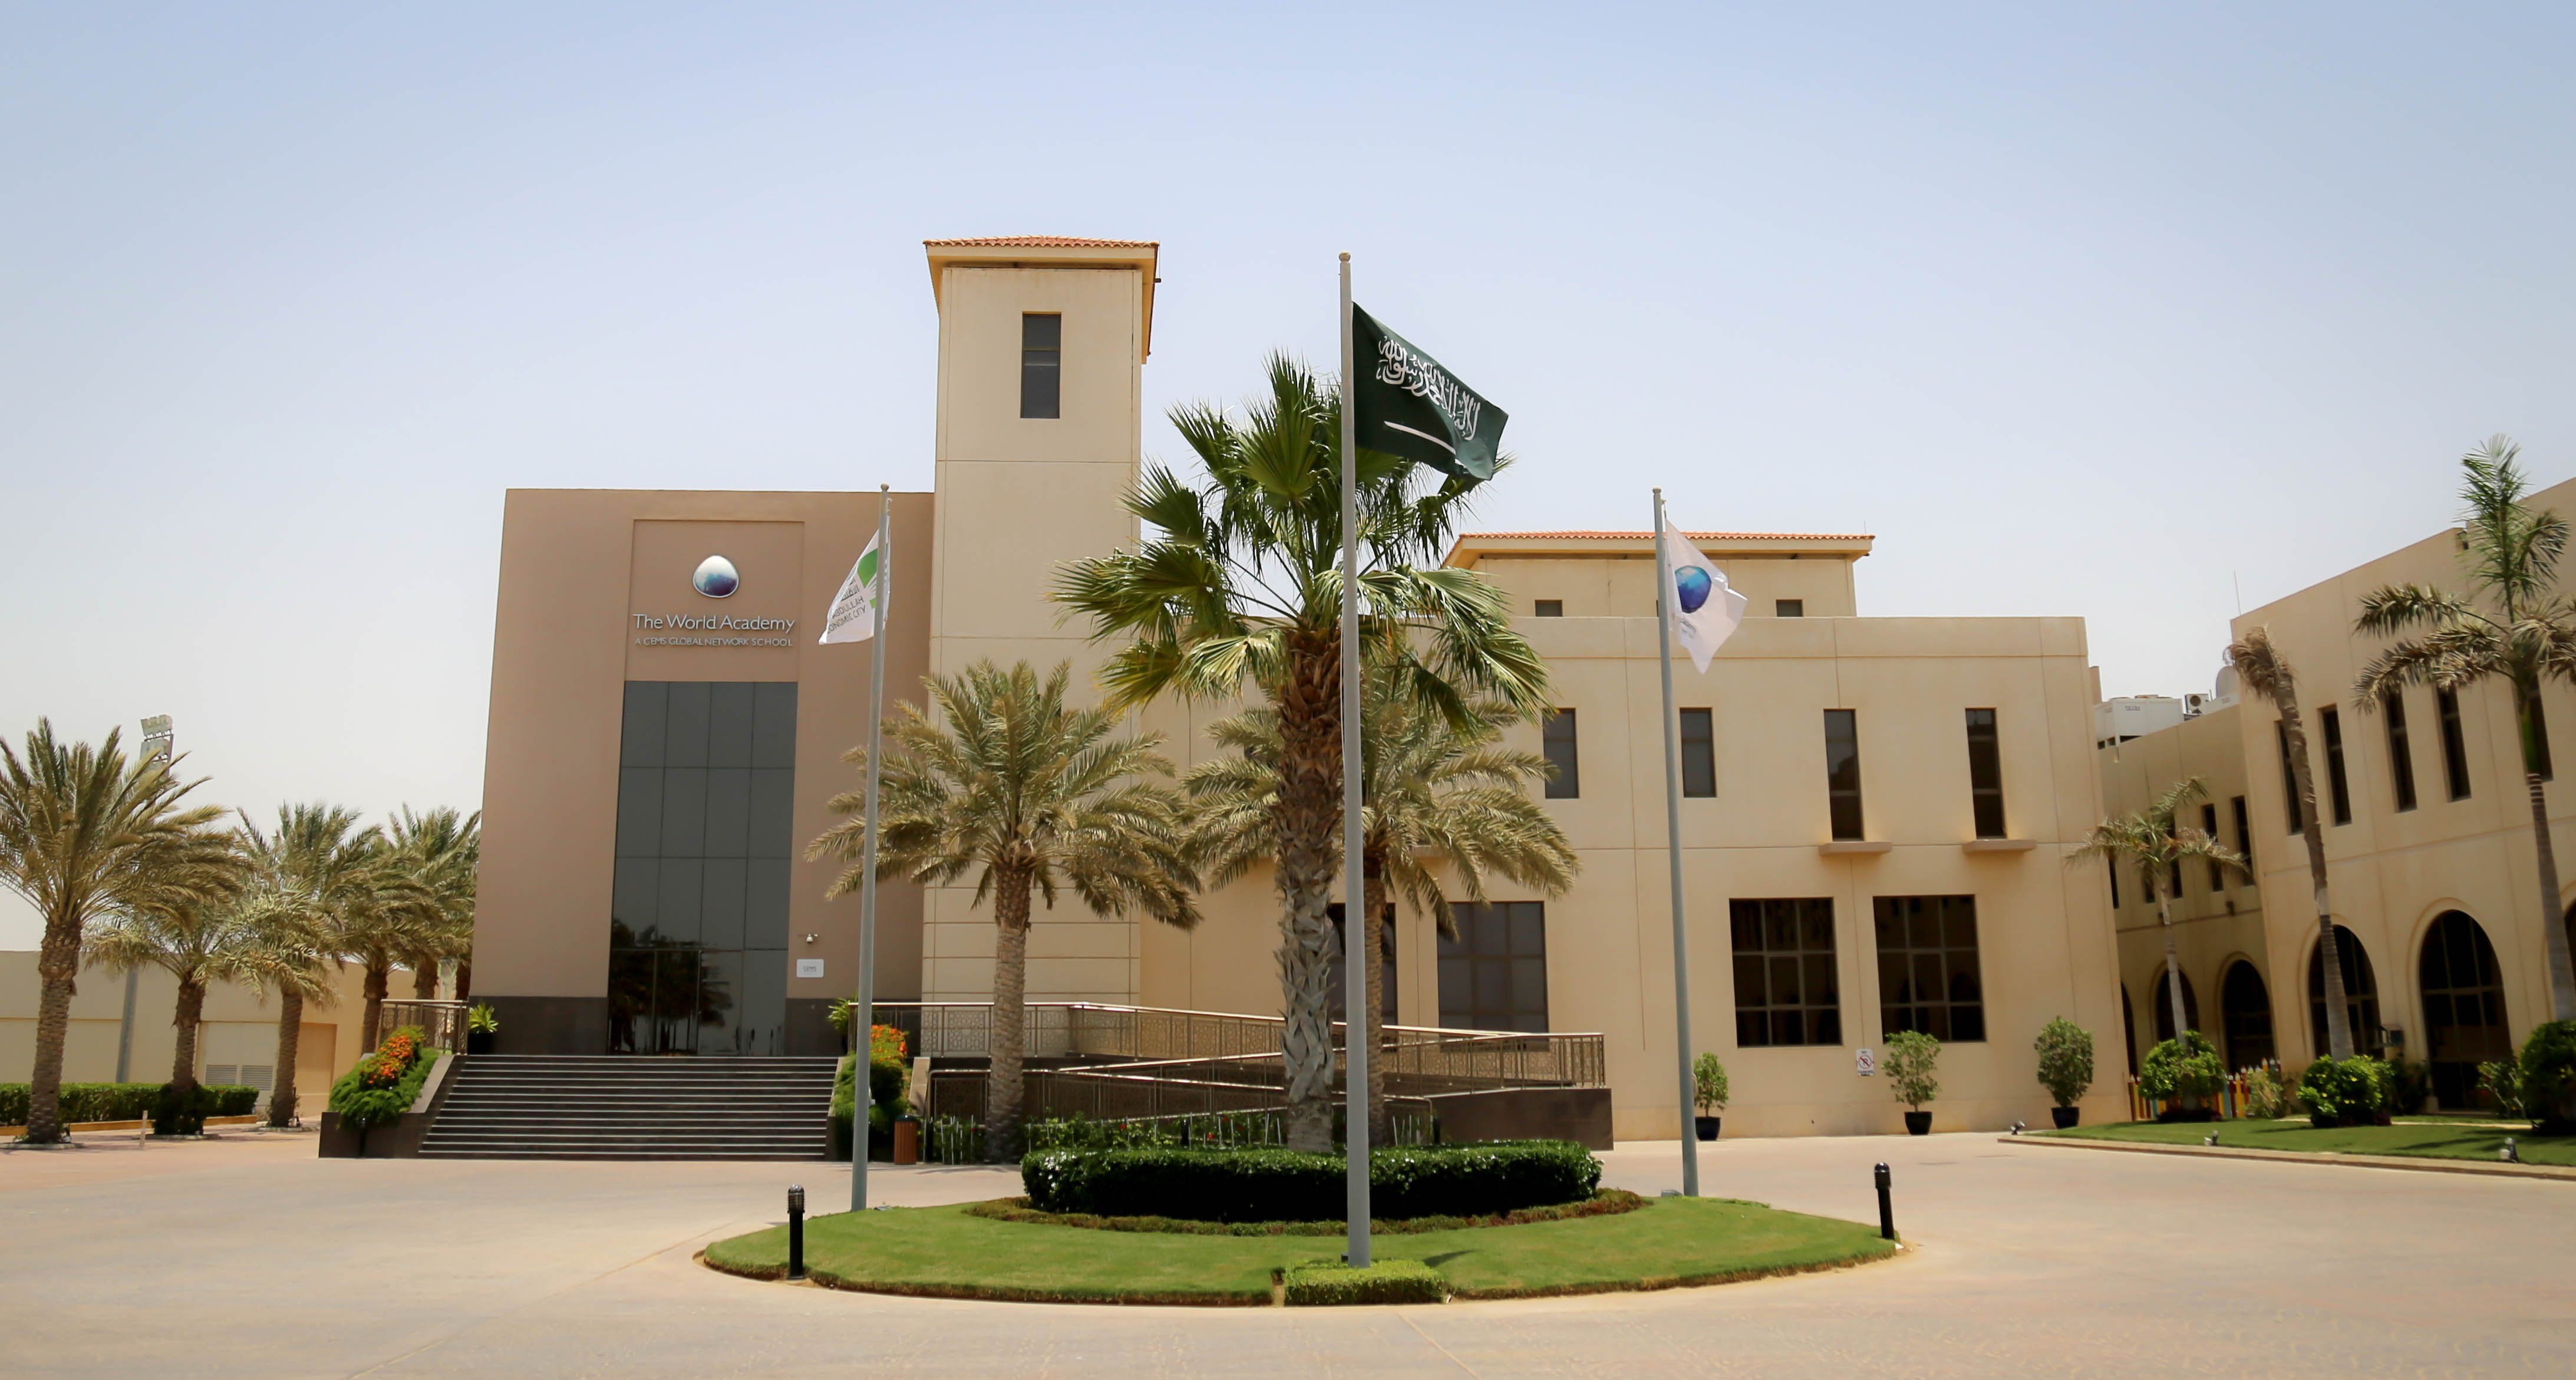 KAEC - The World Academy